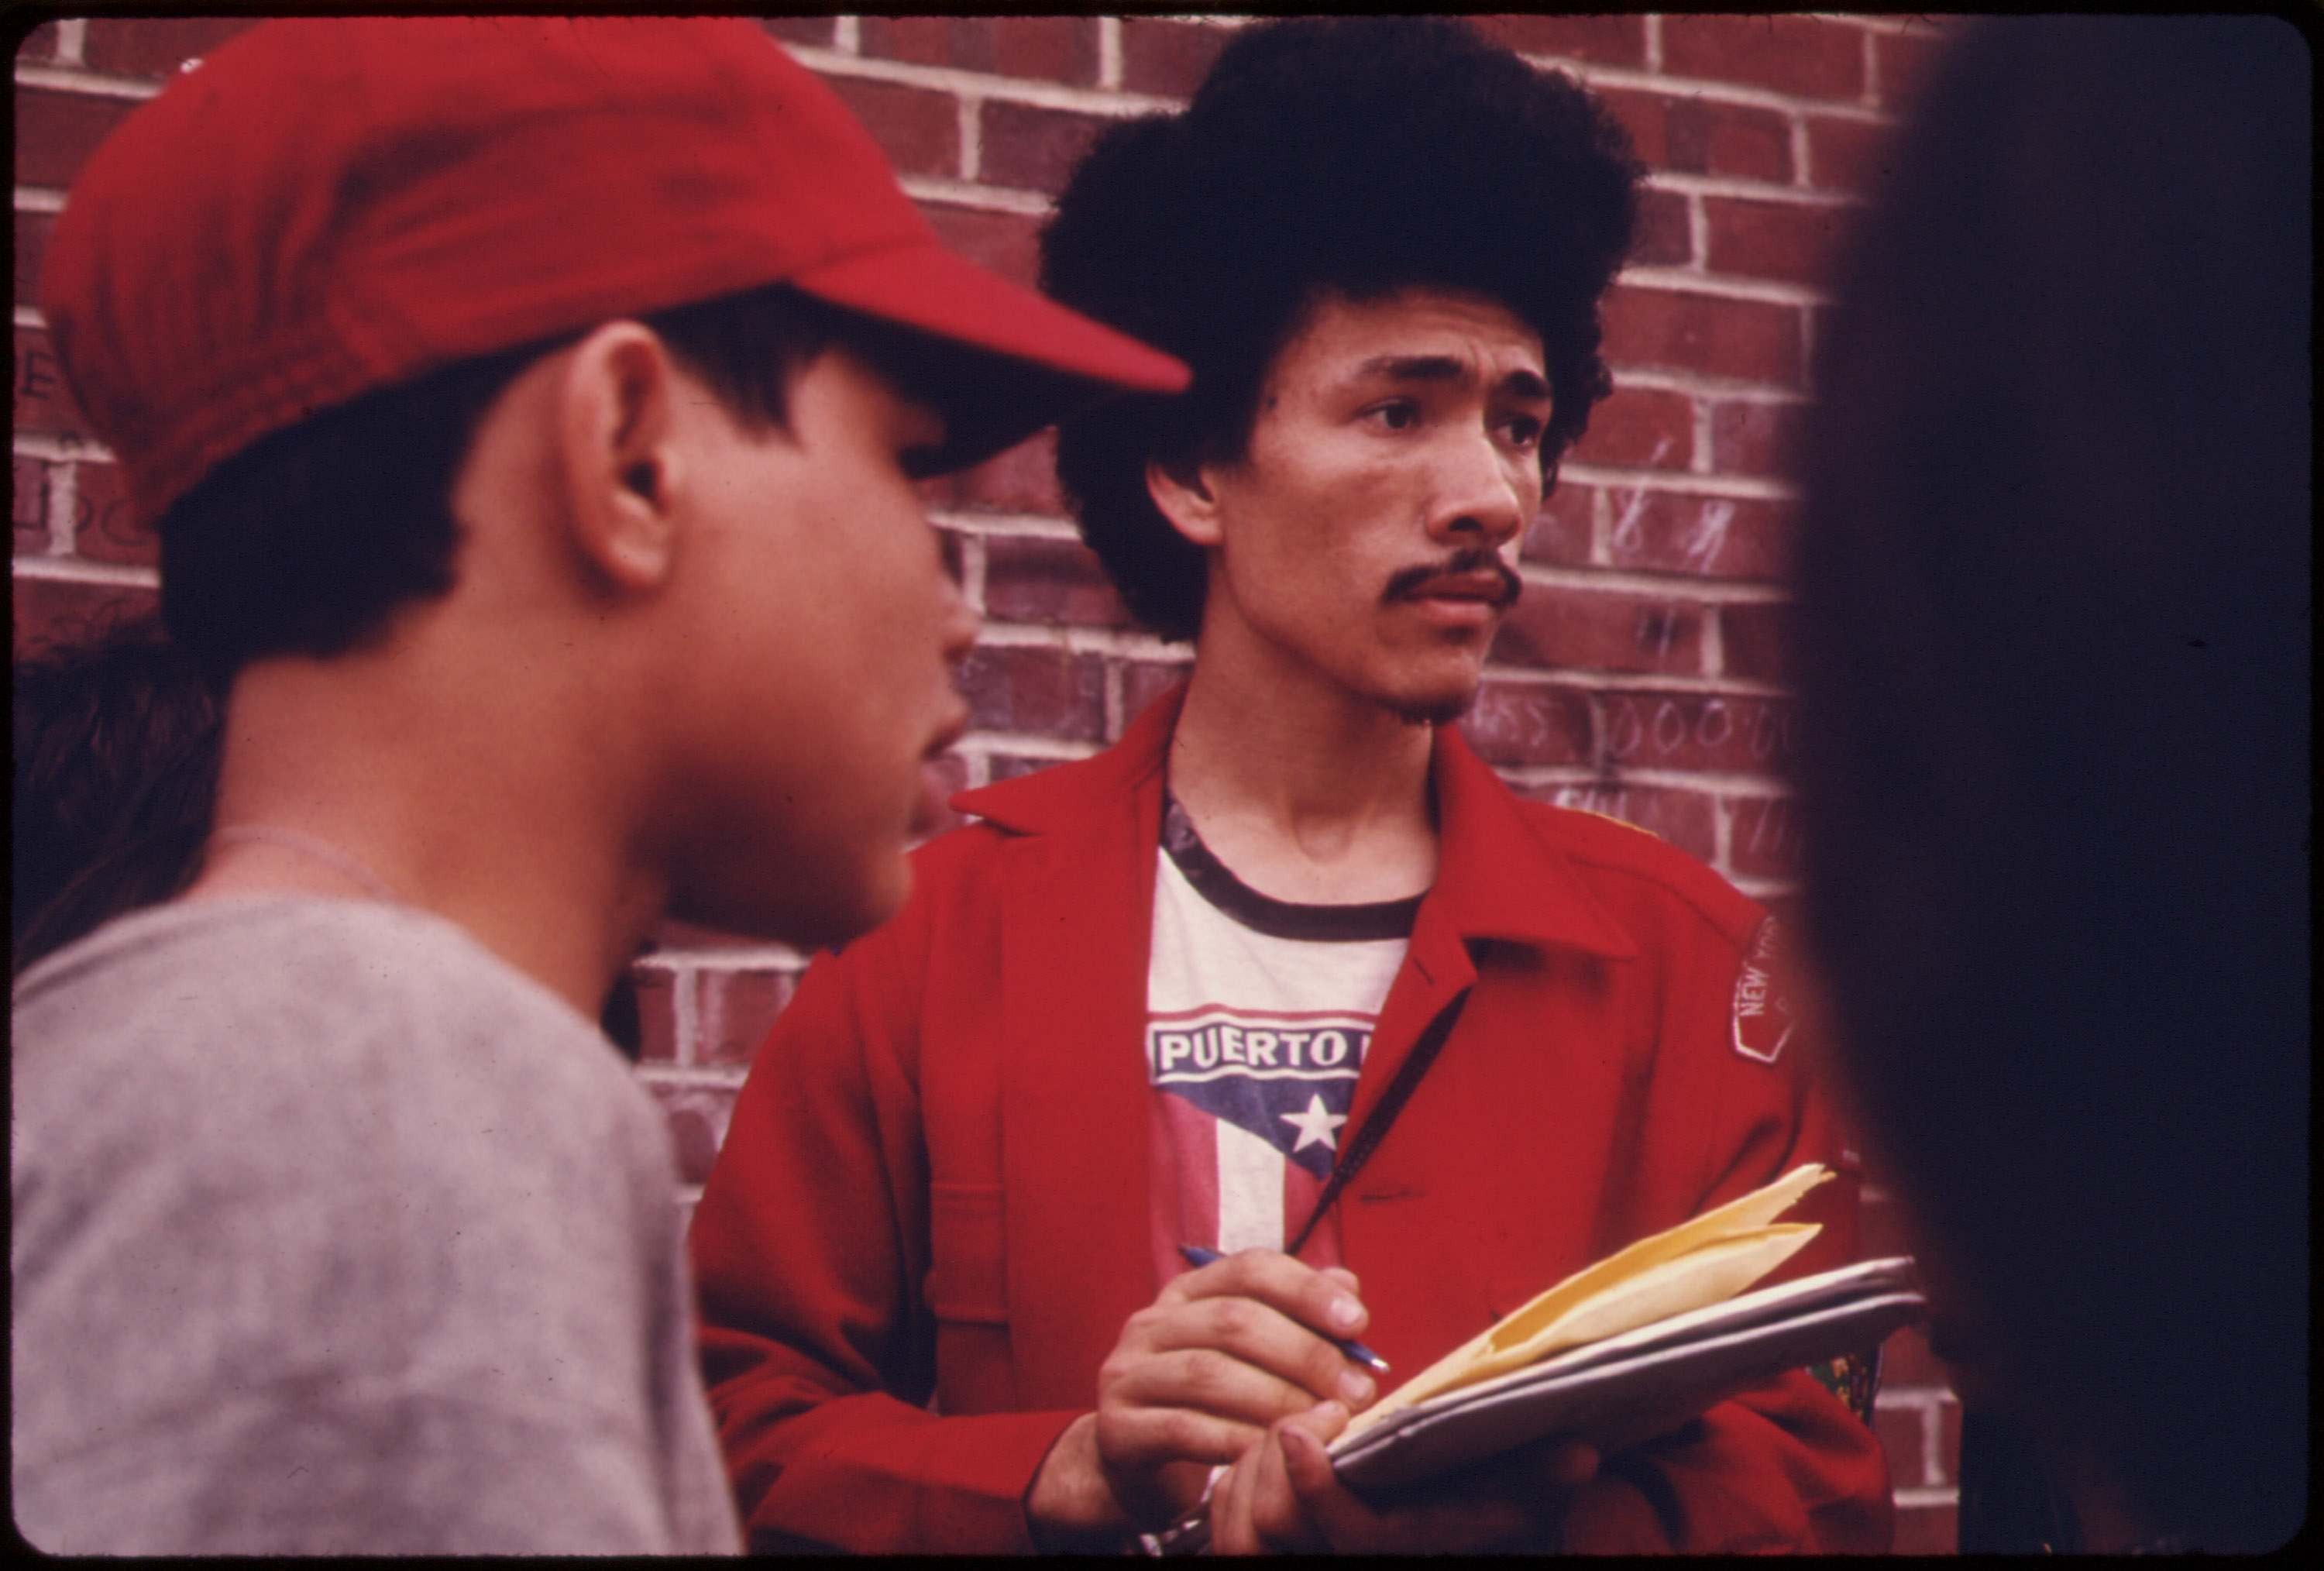 Boy scout leader recruiting among Latin Youths Bedford Stuyvesant district of Brooklyn, June 1974.